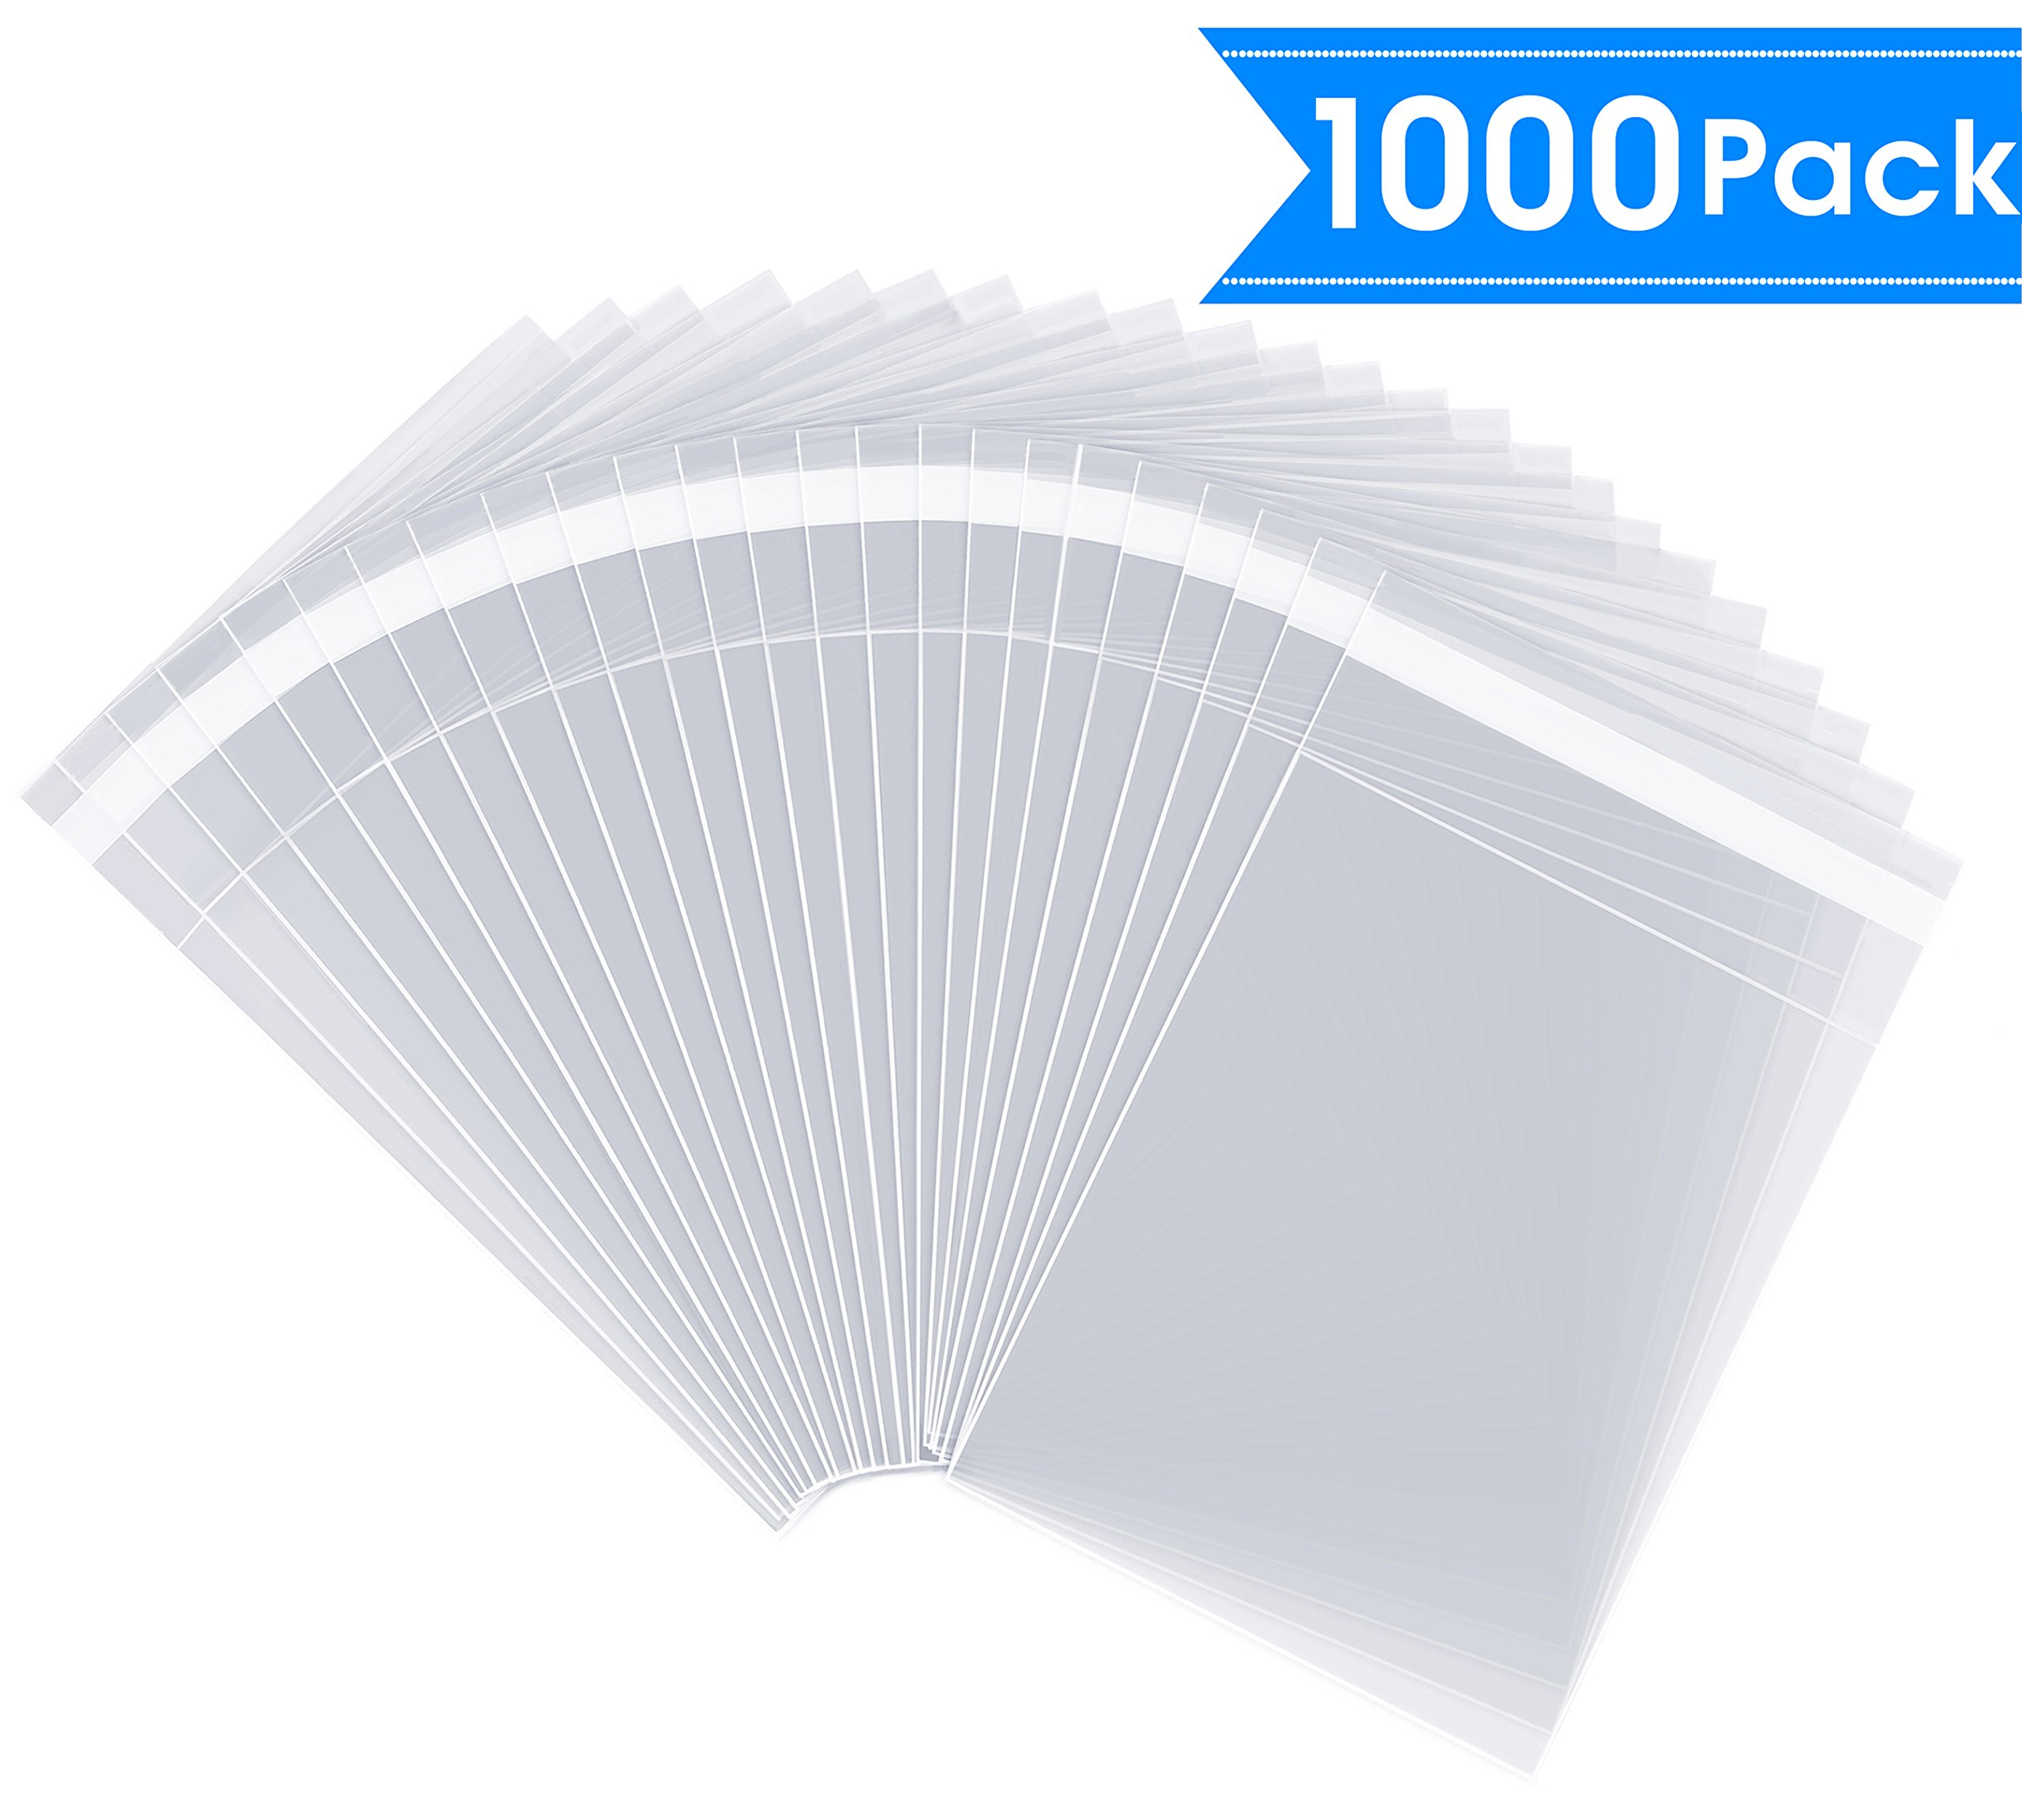 5'' X 7'' (1000 Pack) Clear Resealable Cellophane Cello Bag with Self Seal Adhesive Fits 5X7 inch Prints (A2, A4, A6 Cards Envelopes/Invitations, Photos, Postcards)